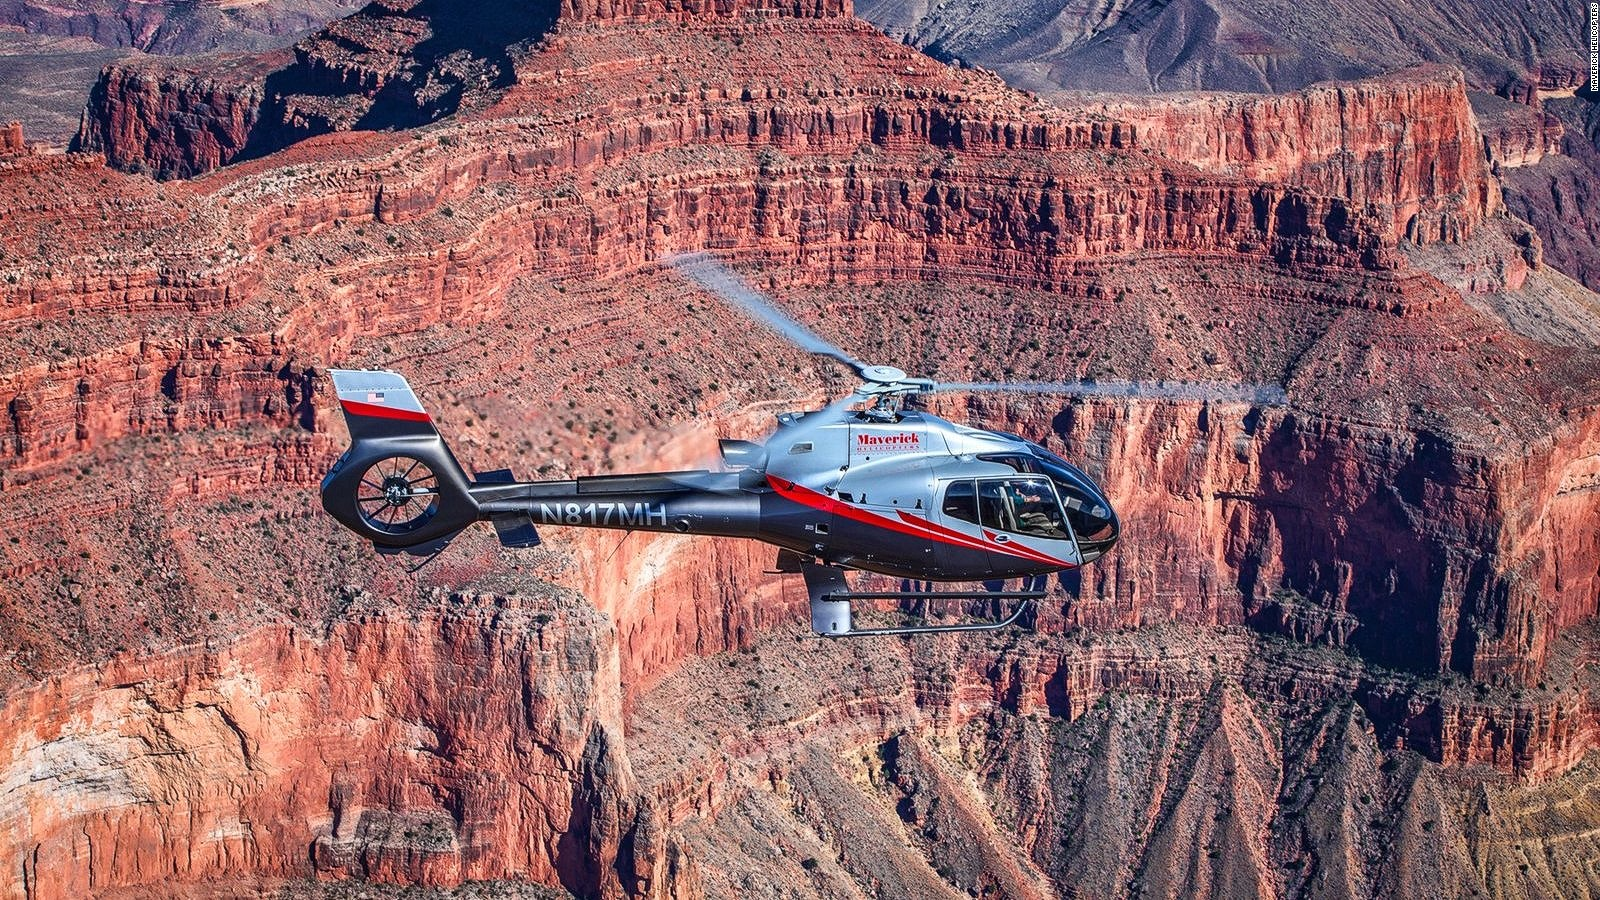 What better way to see North America's greatest and grandest sights than soaring through the air in a rotary-winged chopper? Here are 4 heli-tours in Canada and US